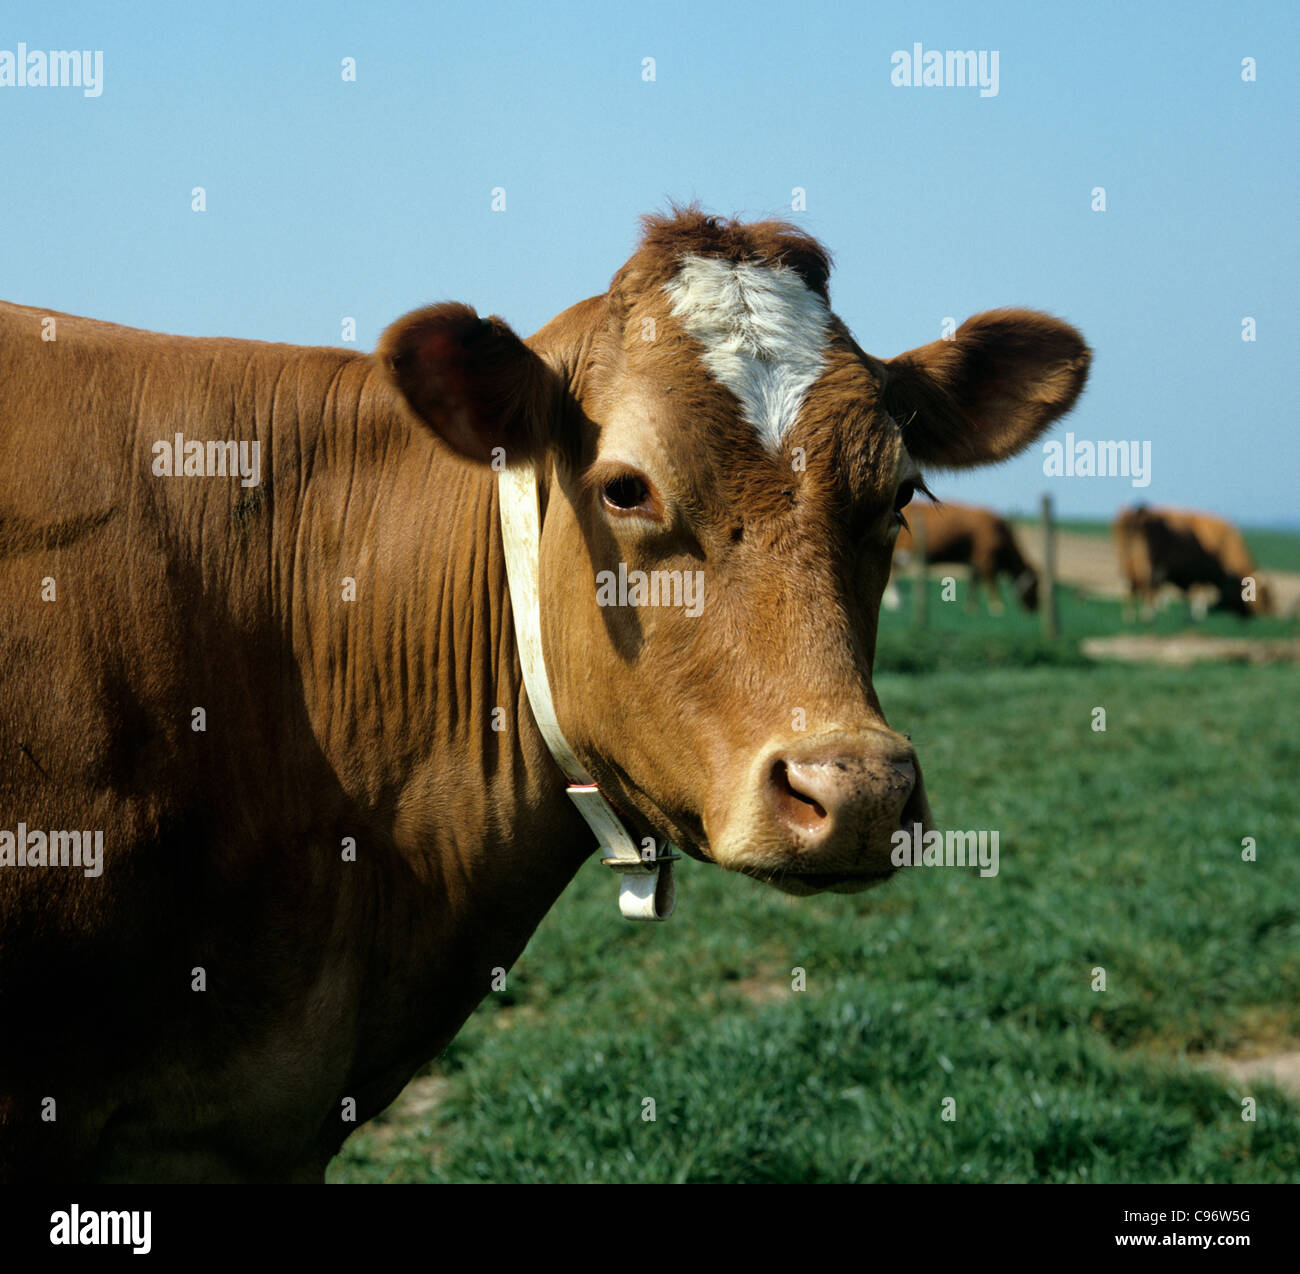 Guernsey cow with identification collar but no tags - Stock Image